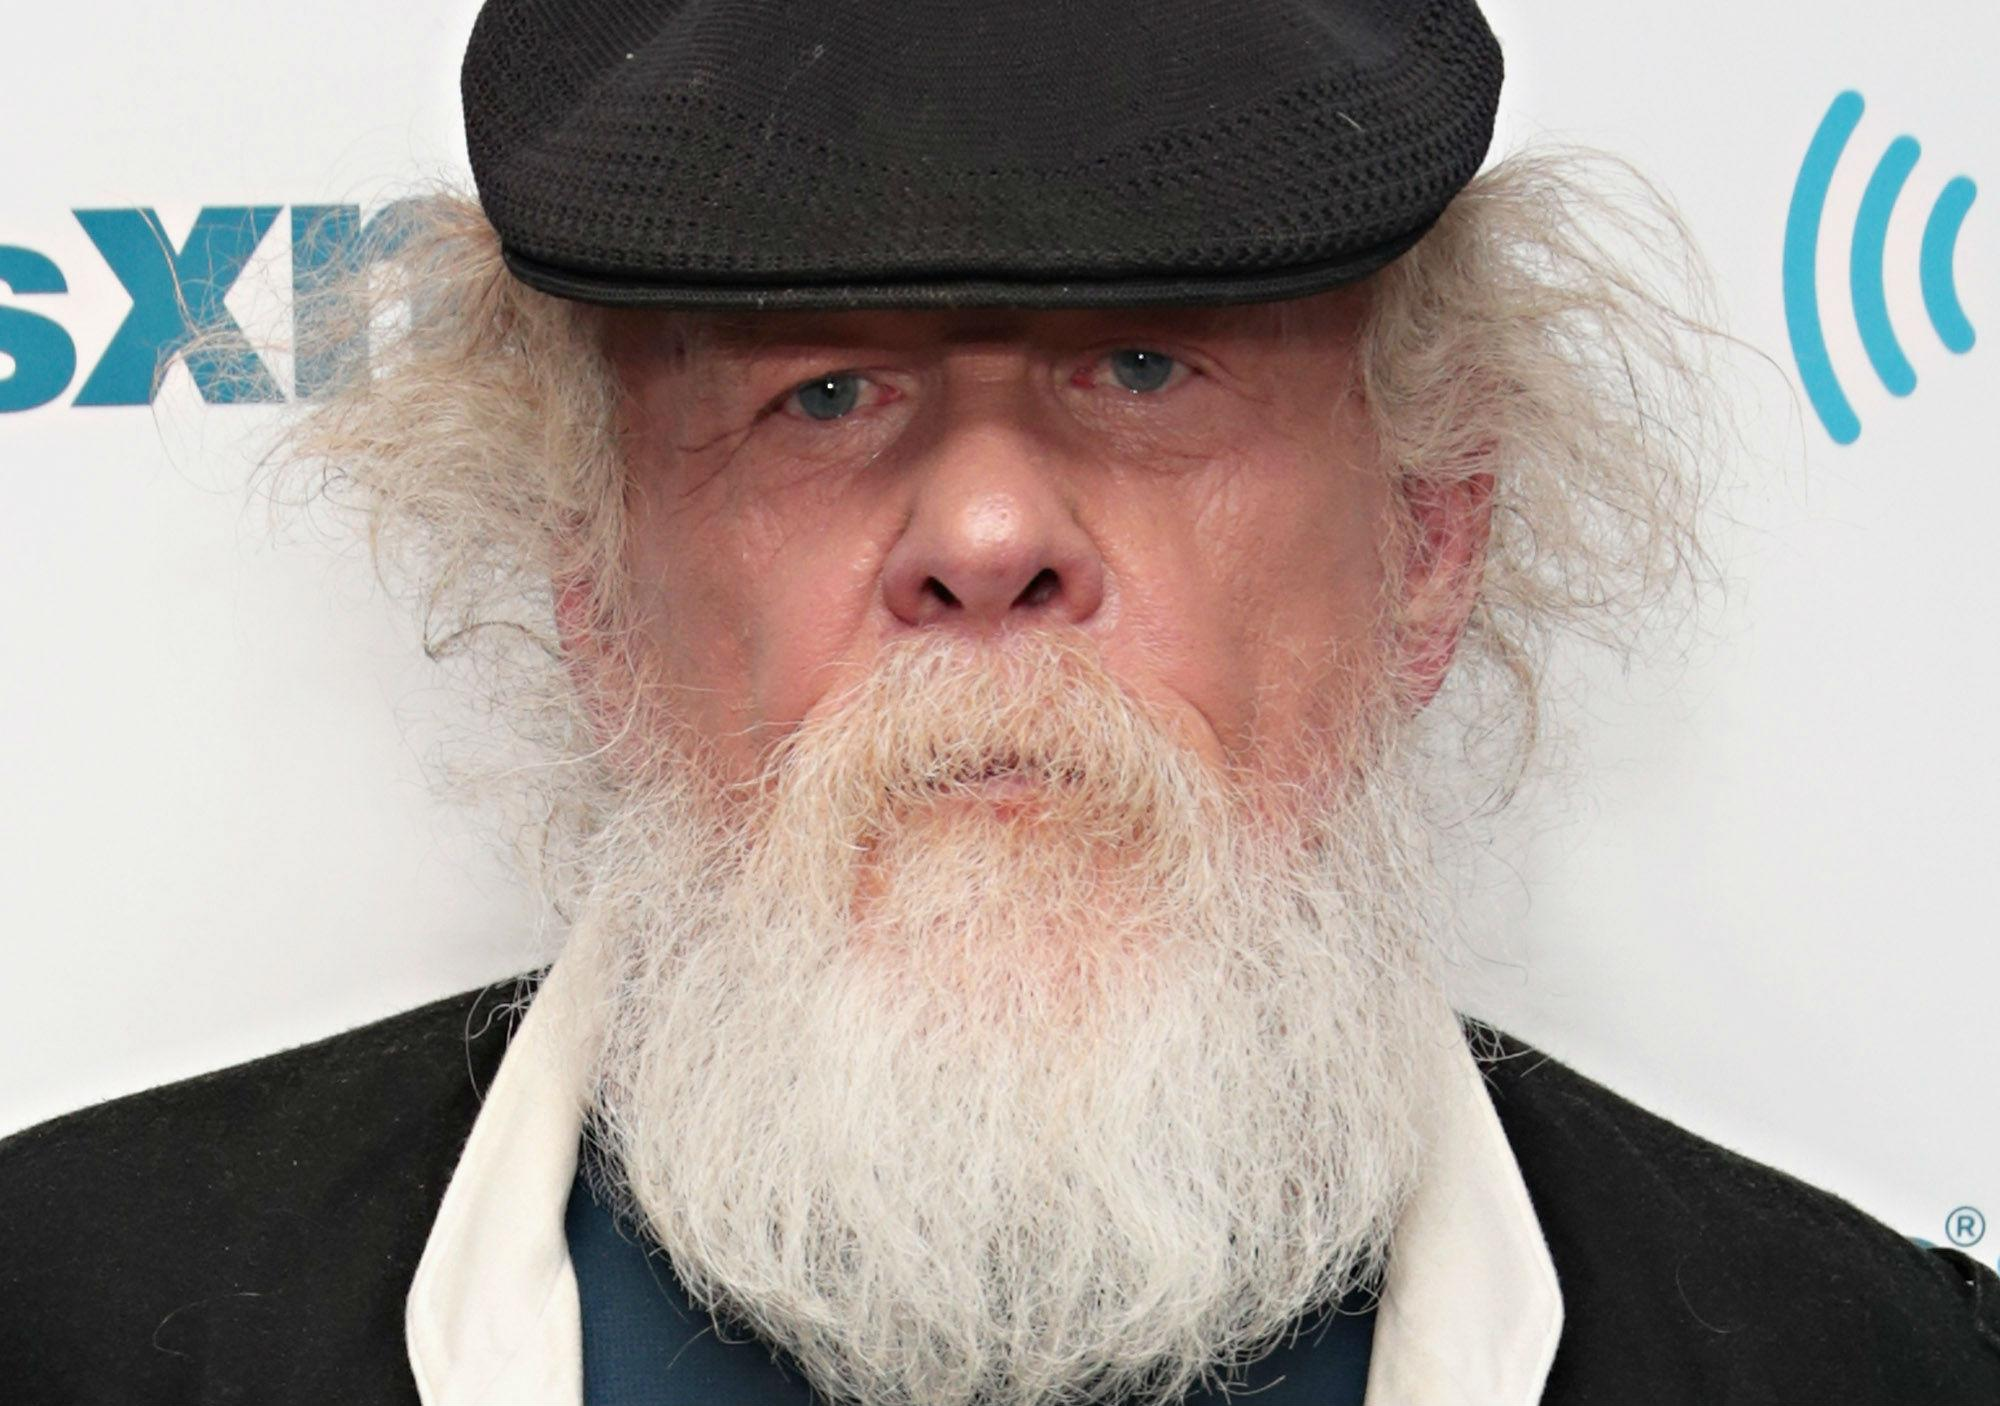 Nick Nolte unrecognisable with new Santa beard